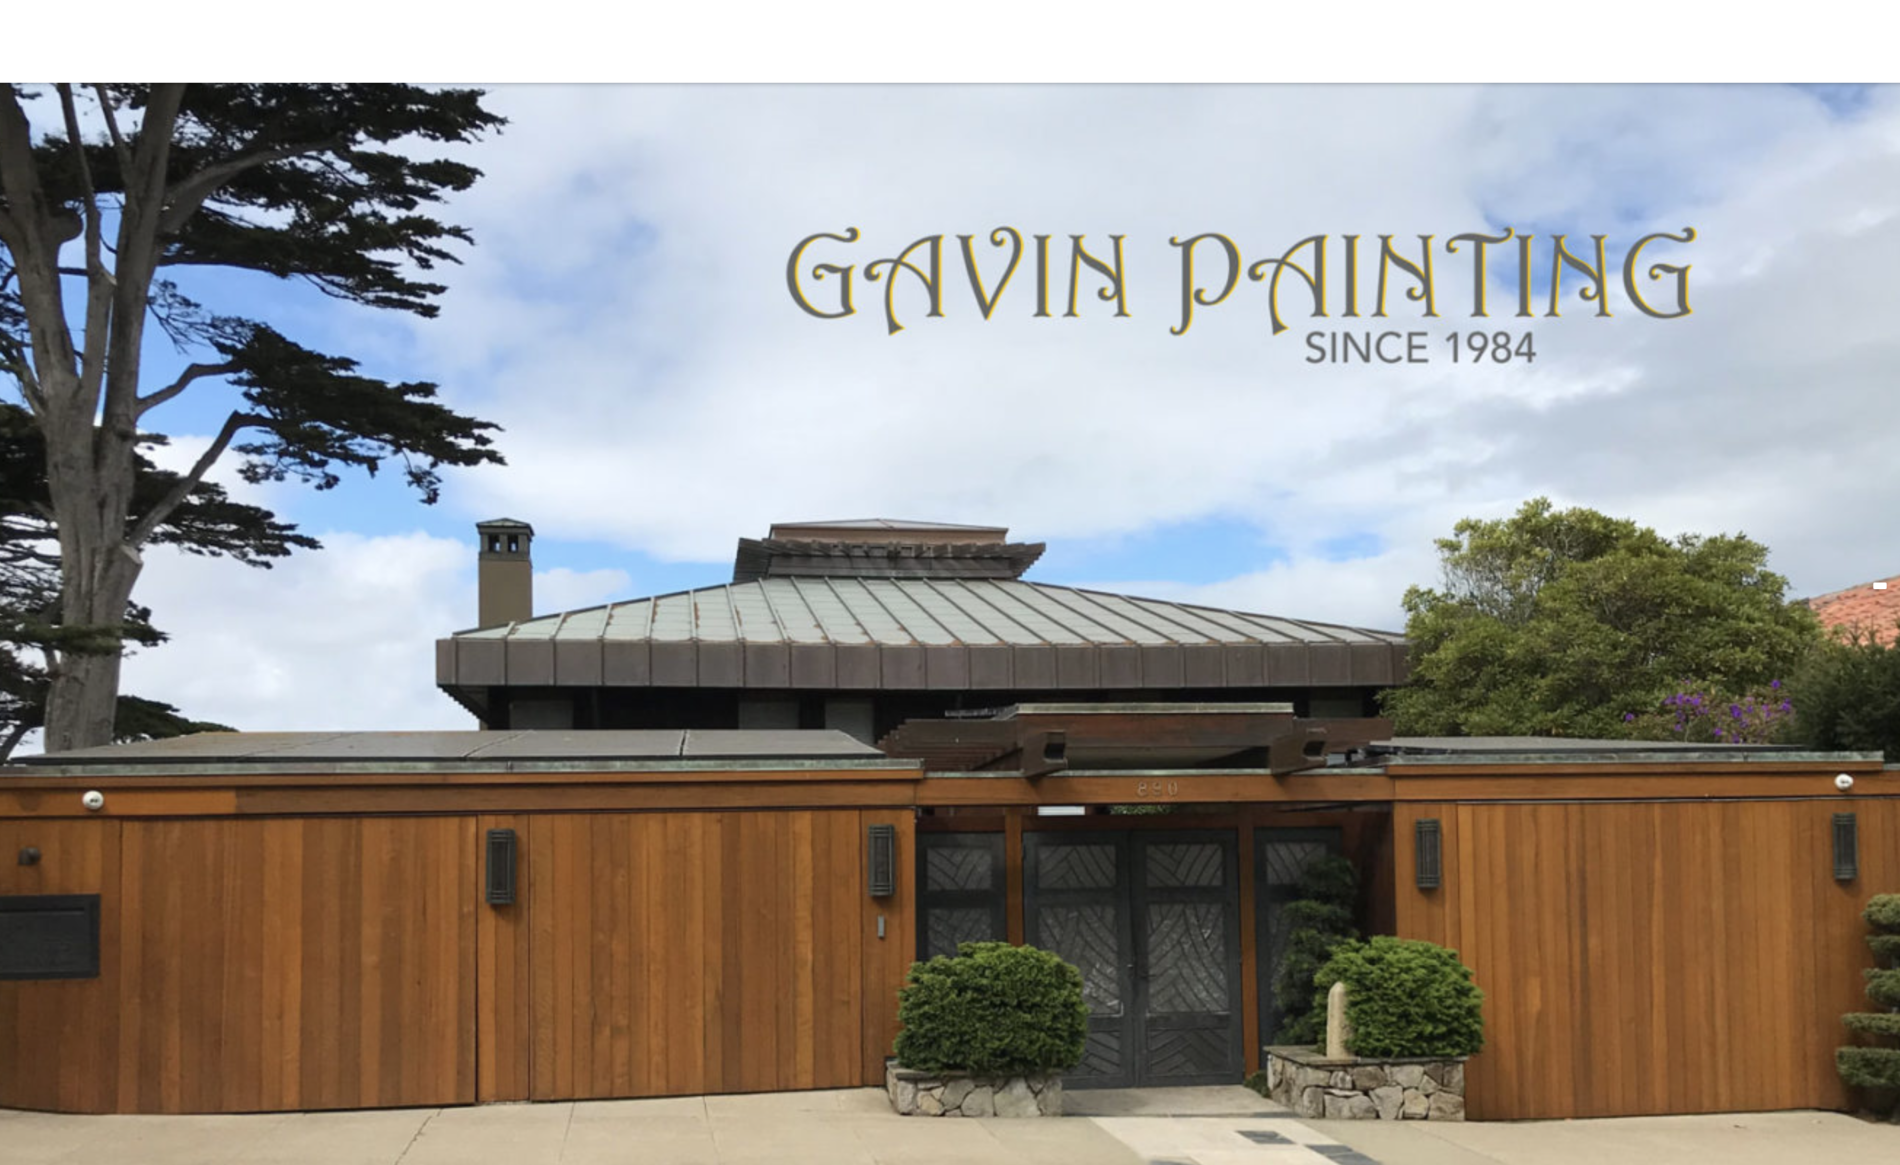 Painting contractors residential and commercial weather proofing serving the bay area